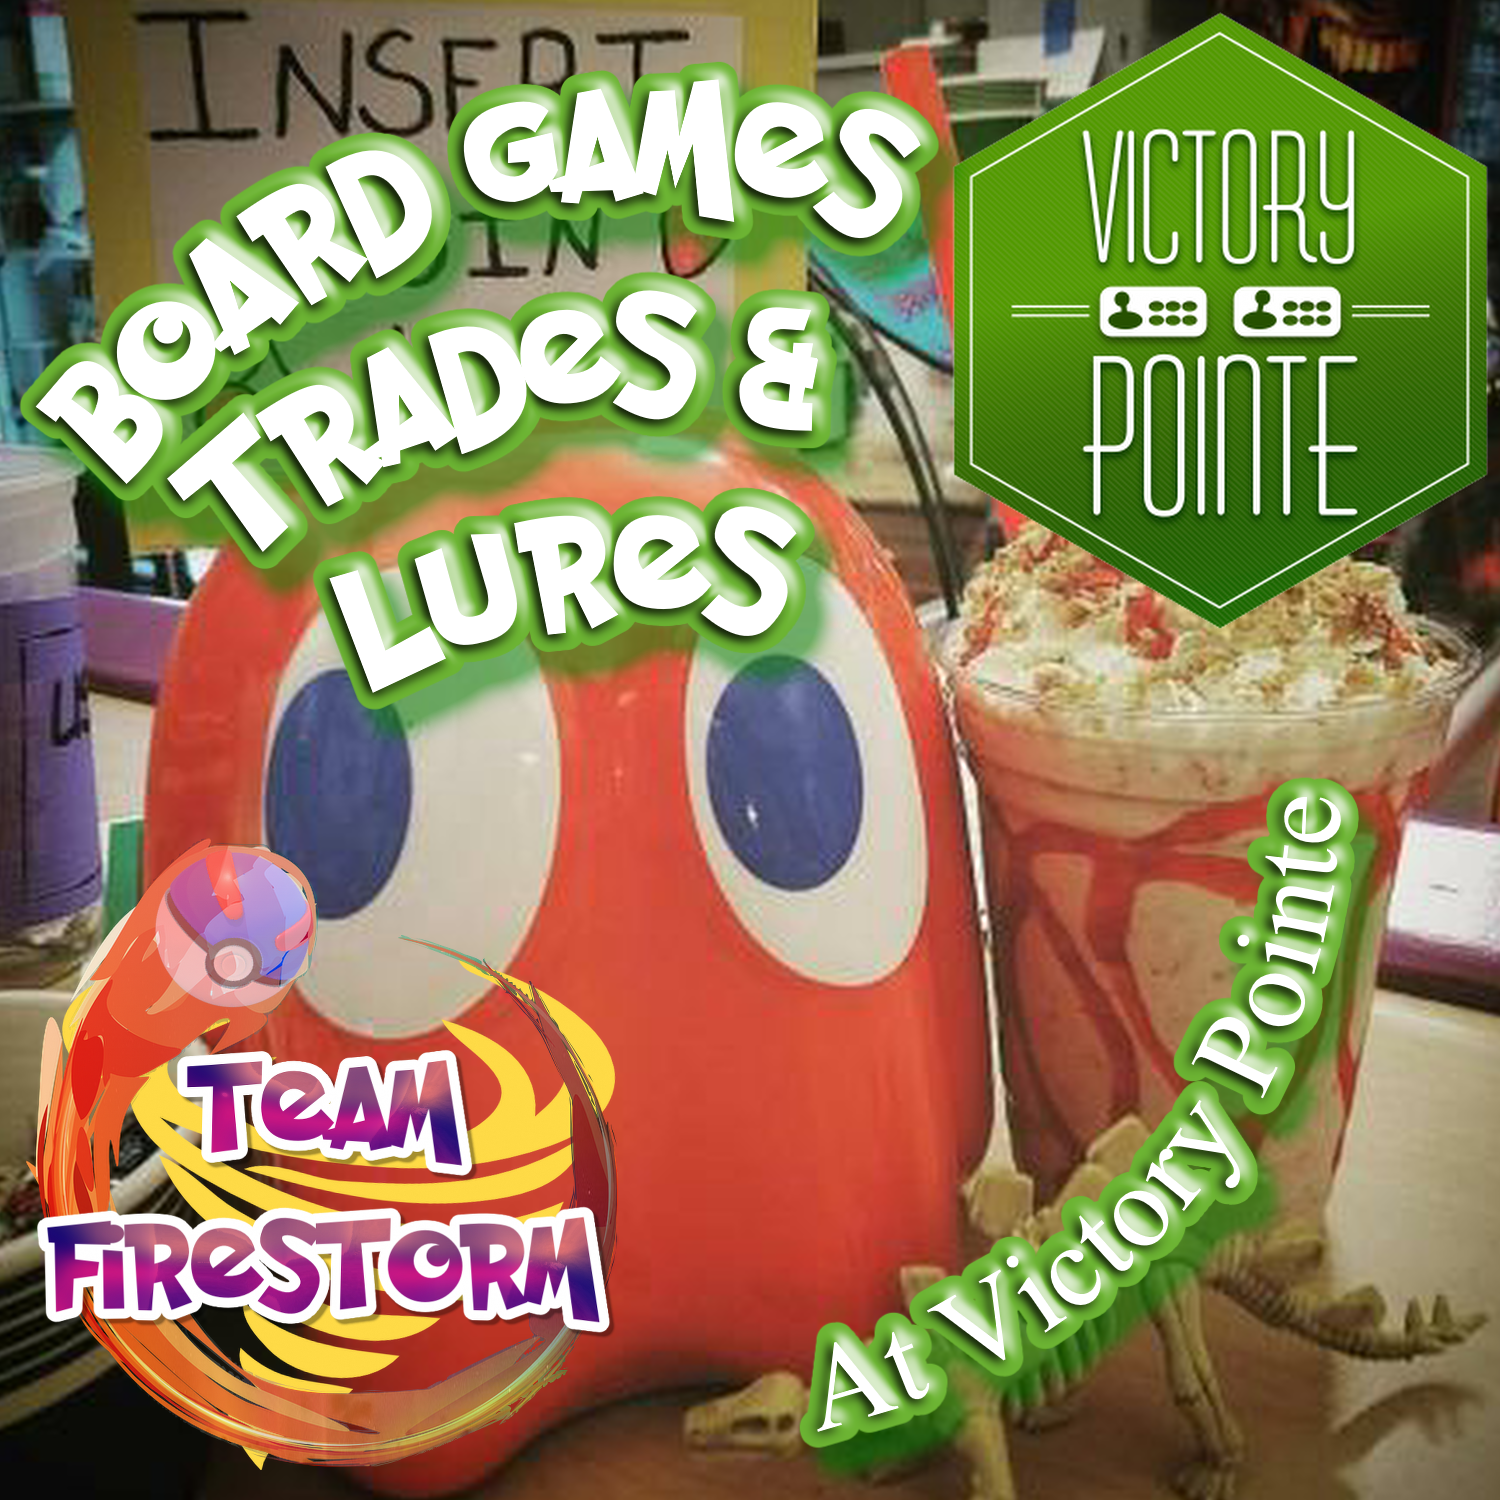 Board Games & Lures at Victory Pointe